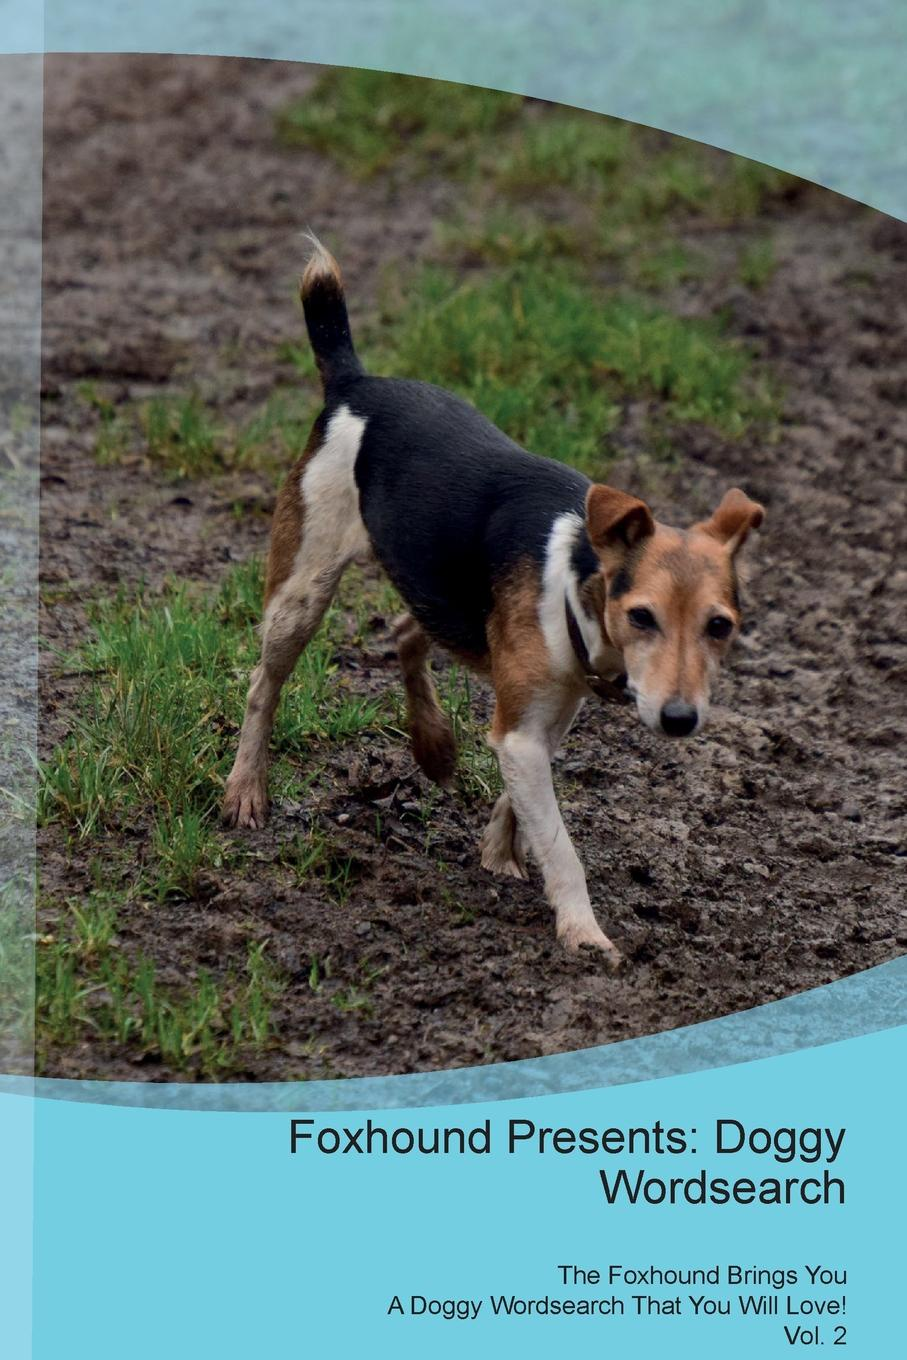 Doggy Puzzles Foxhound Presents. Wordsearch The Brings You A That Will Love! Vol. 2